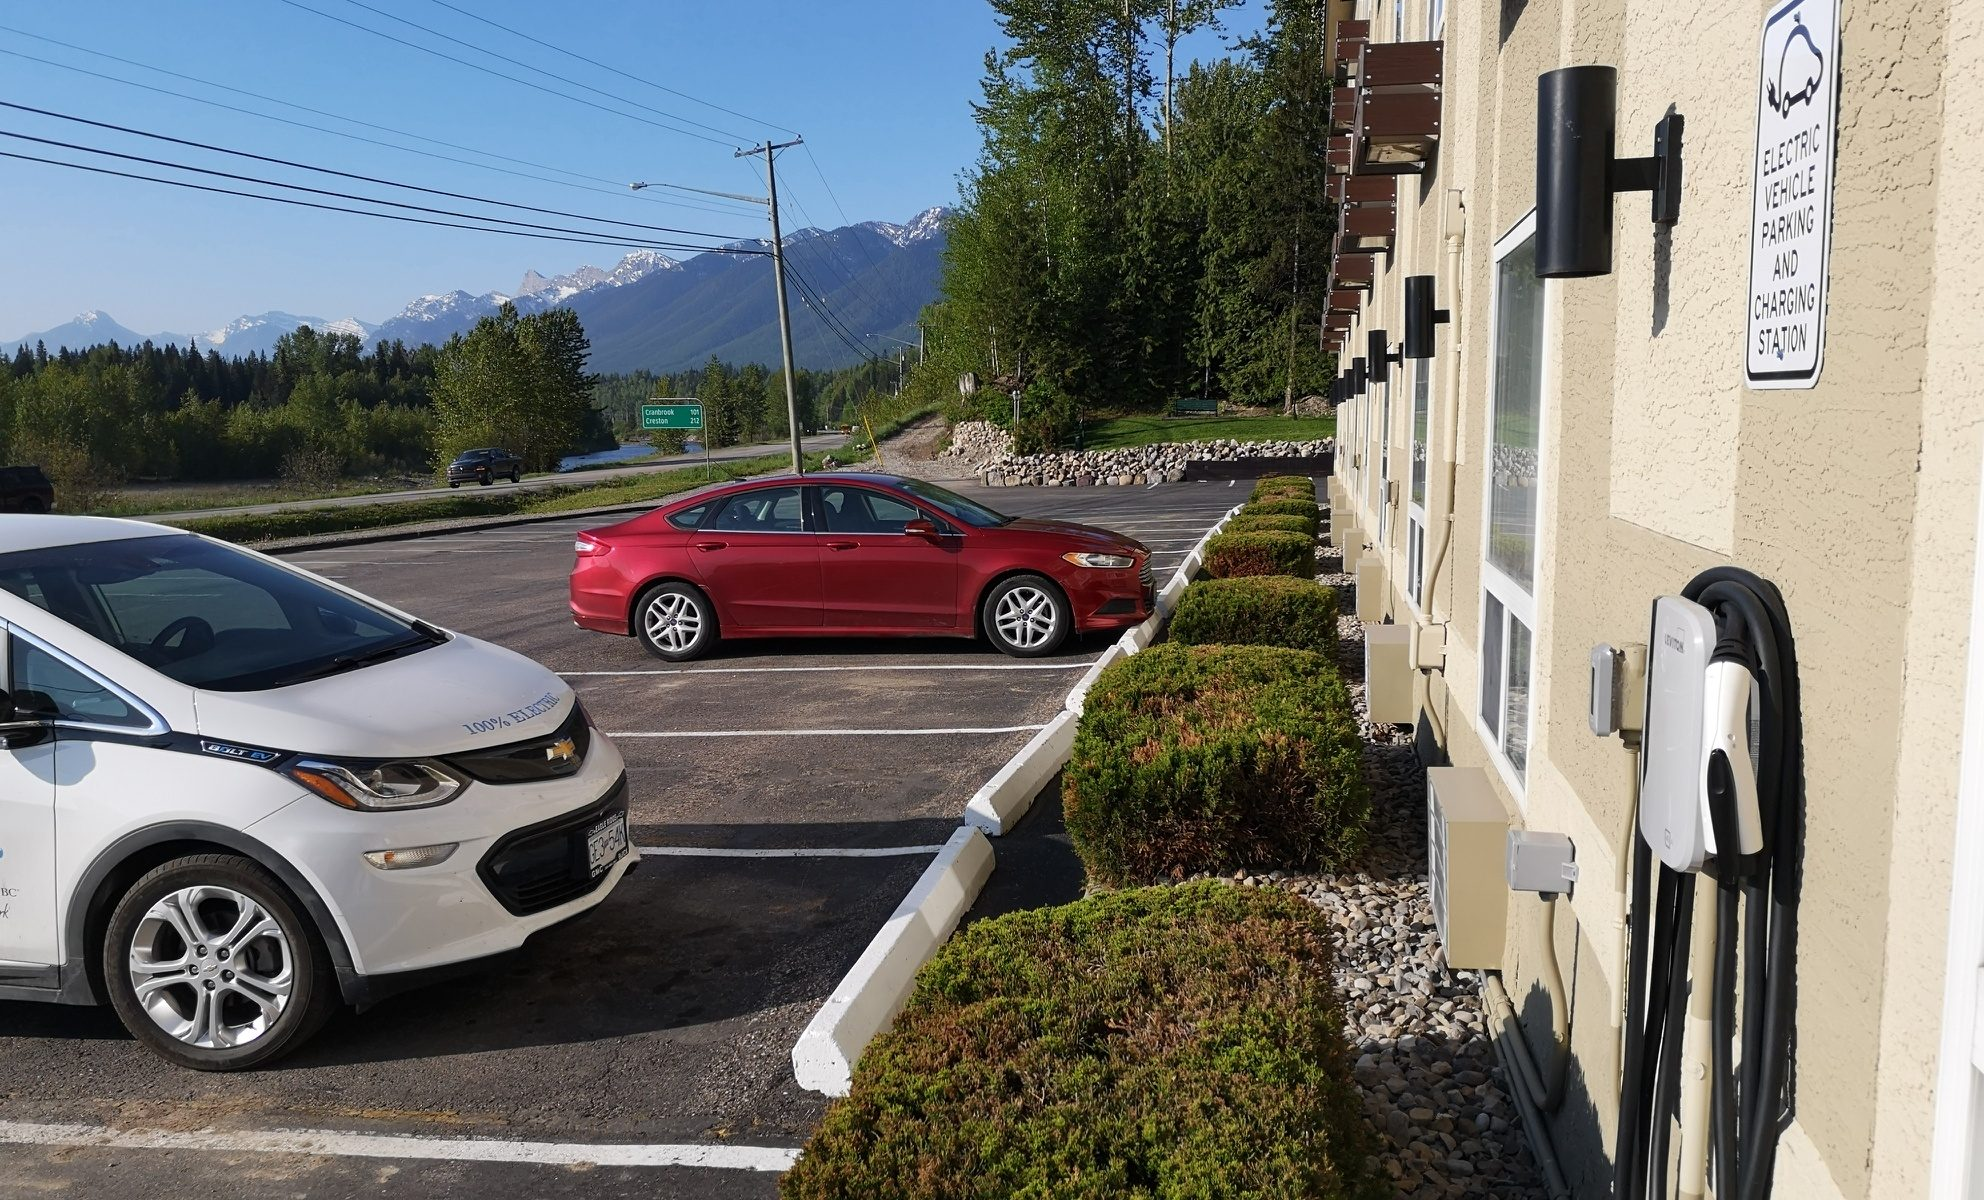 Level 2 Charger at Fernie Super 8